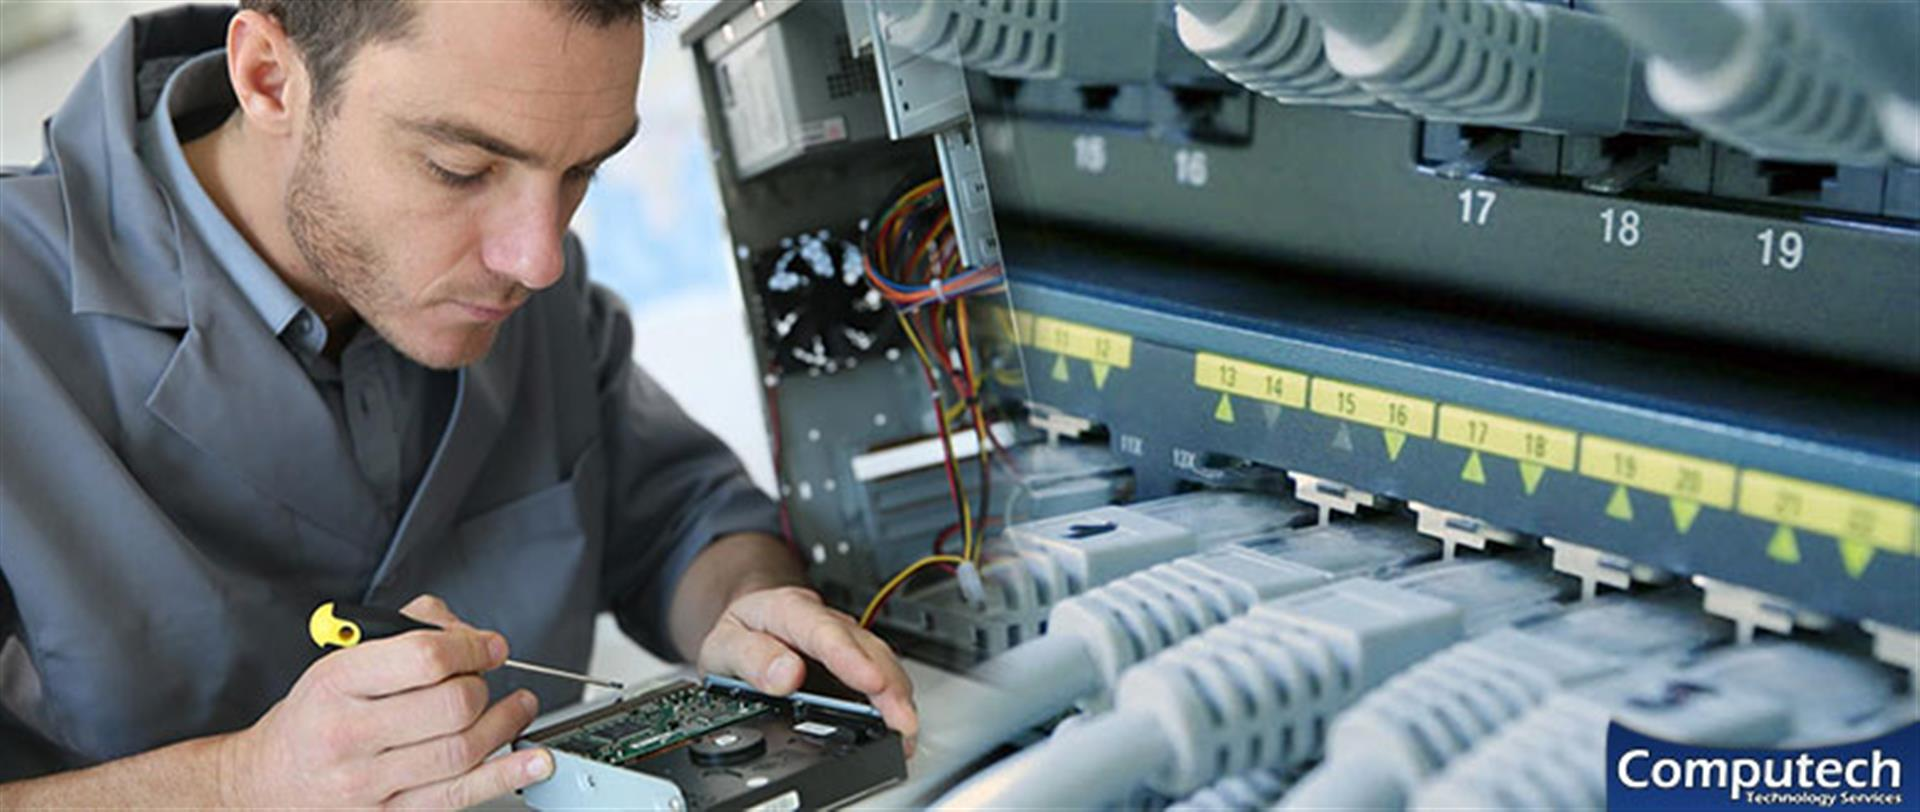 Herndon Virginia Onsite Computer & Printer Repairs, Network, Voice & Data Cabling Services